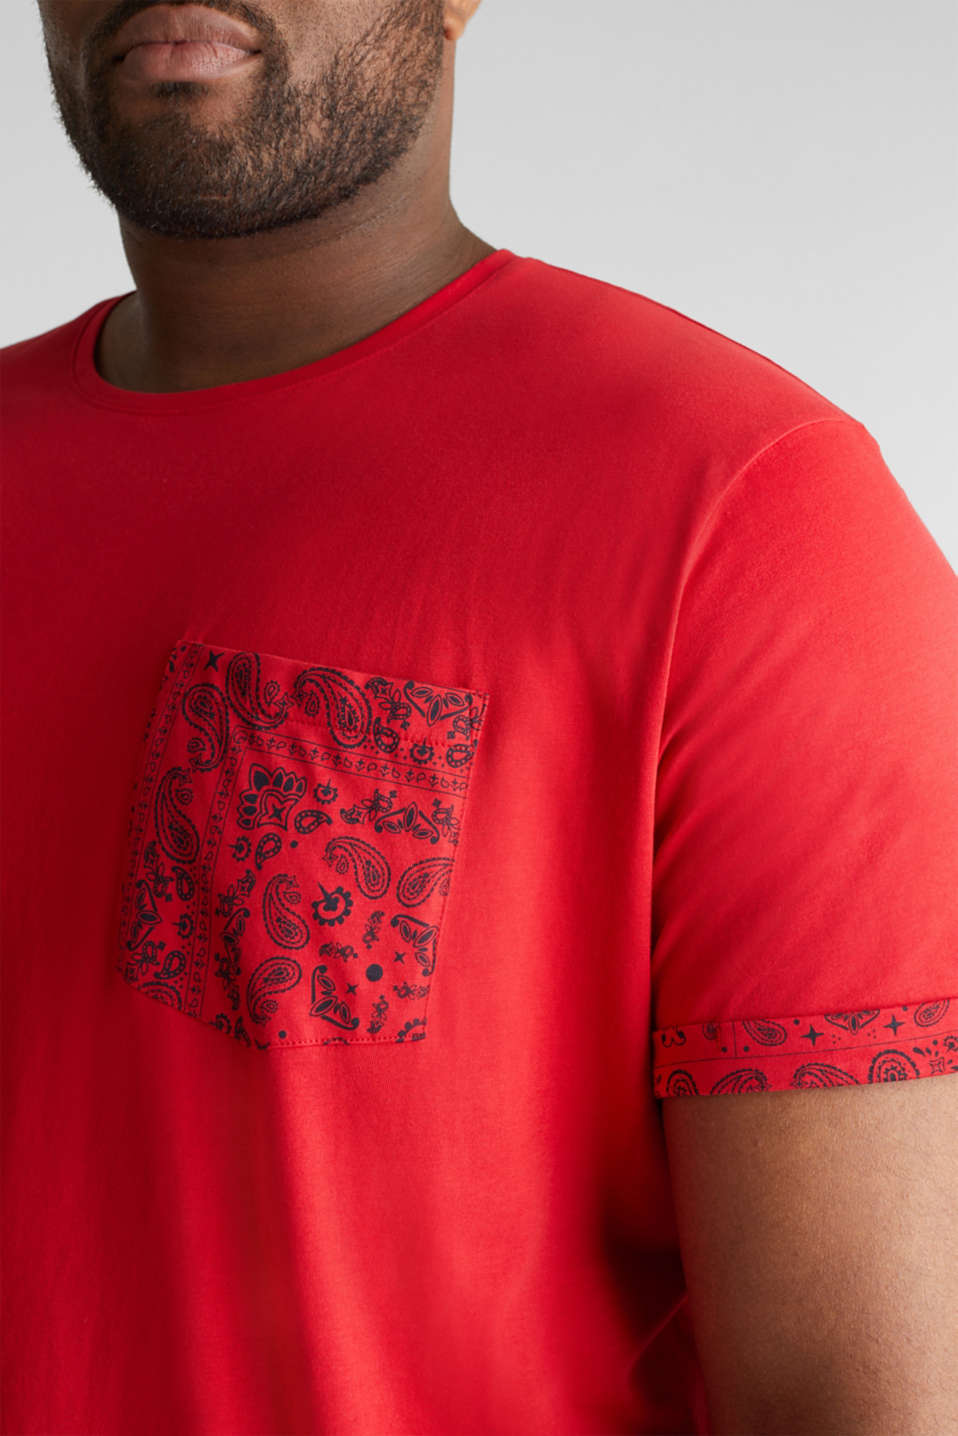 Jersey T-shirt with bandana details, 100% cotton, RED, detail image number 1